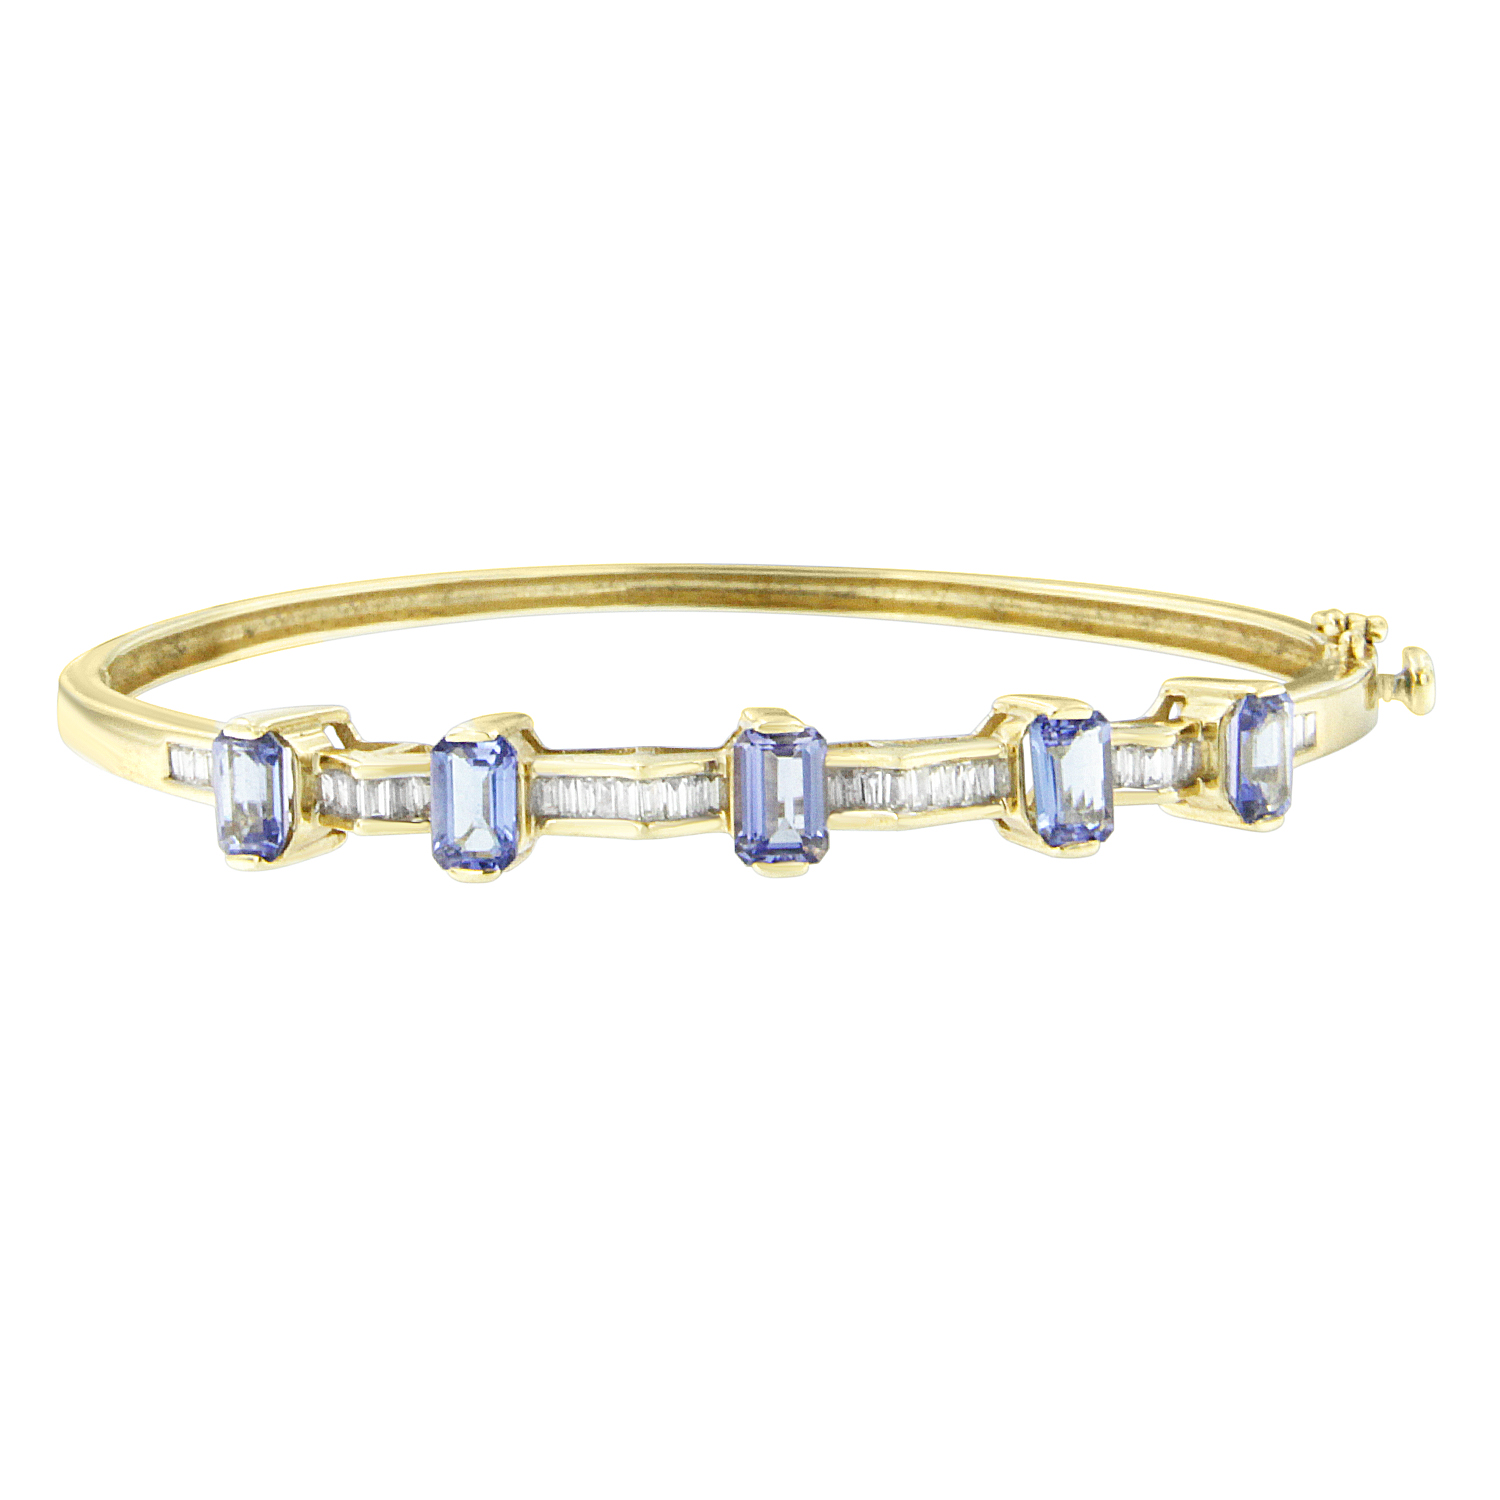 14KT Yellow Gold 4ct TDW Round-Cut Diamond and Tanzanite Bracelet (H-I,SI2-I1) by VJG